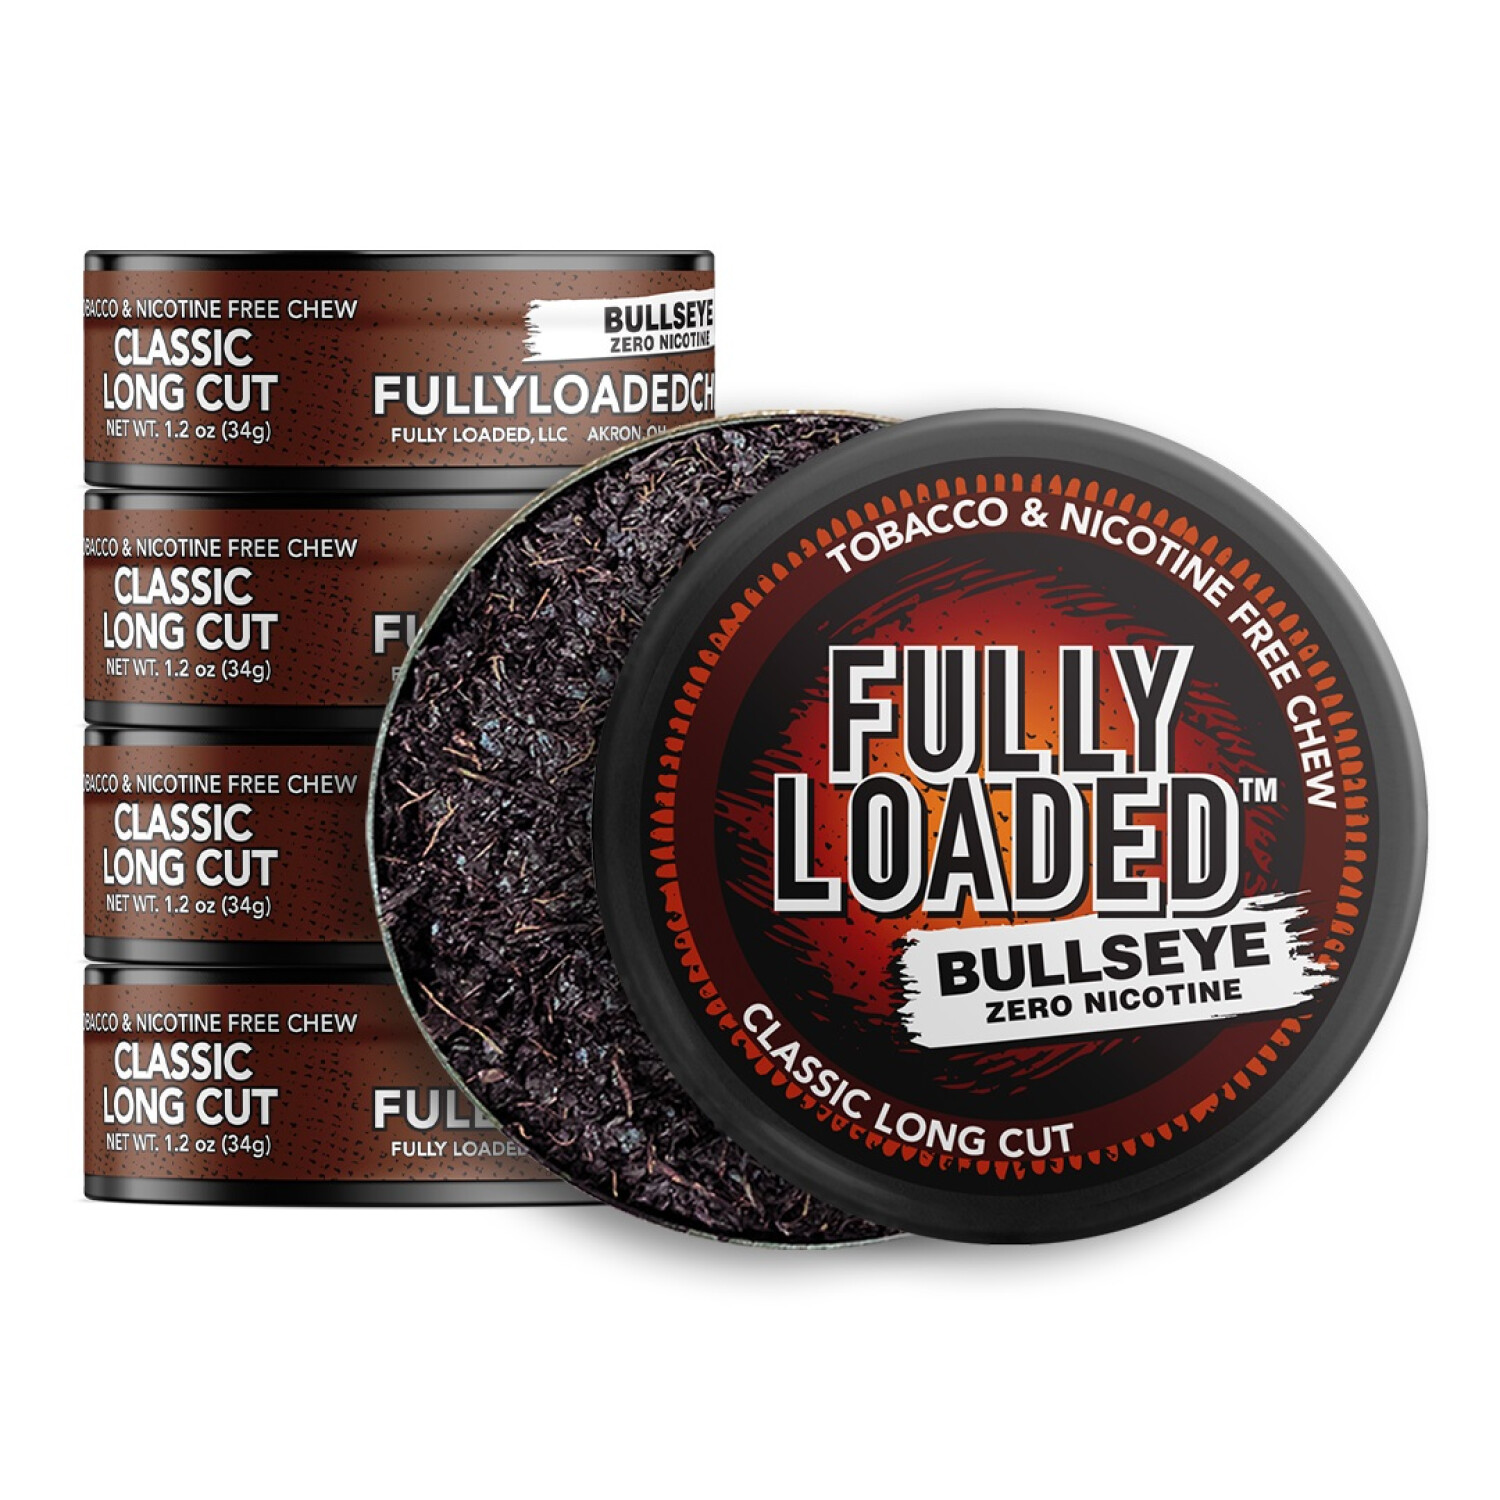 Fully Loaded Chew Tobacco and Nicotine Free Classic Bullseye Long Cut Signature Flavor, Chewing Alternative-5 Cans